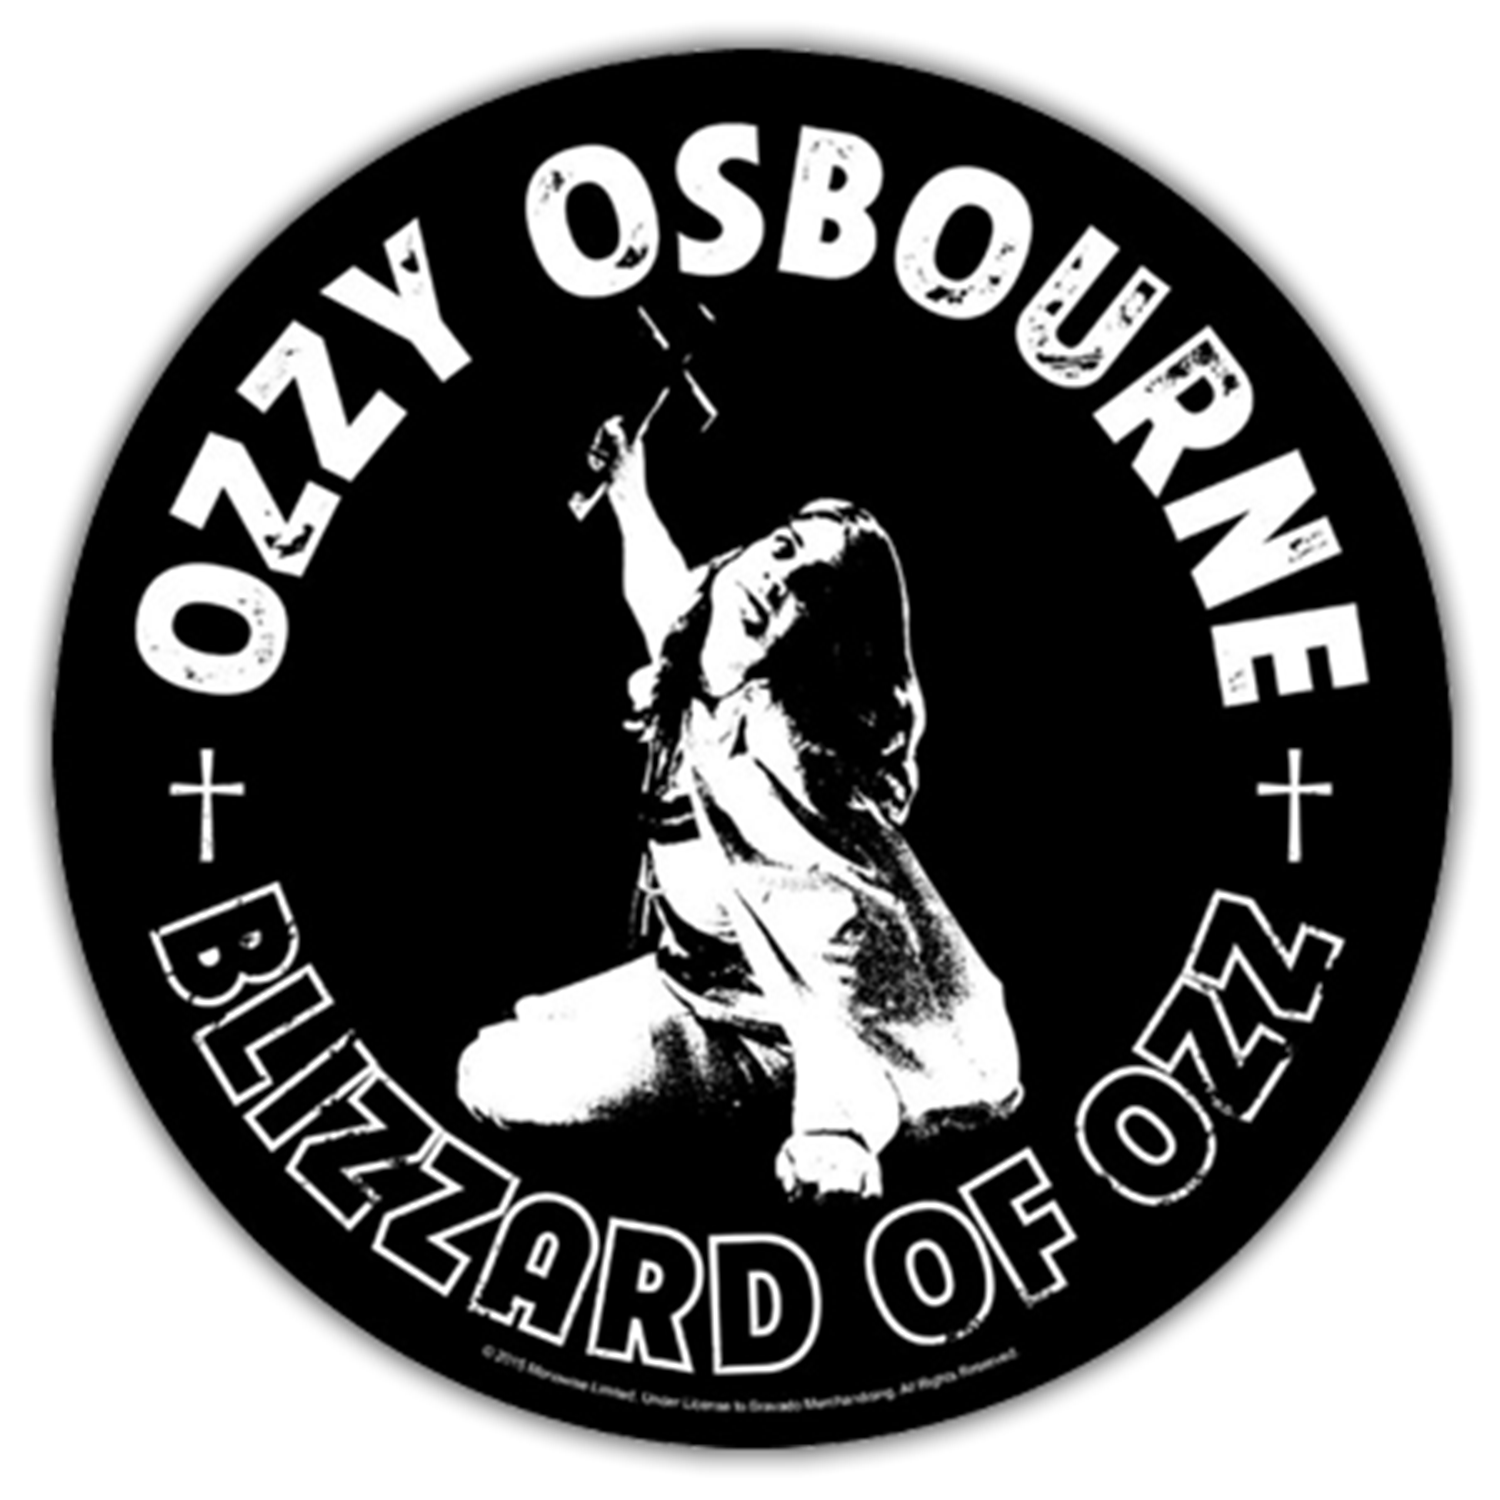 Blizzard Of Ozz Round Patch